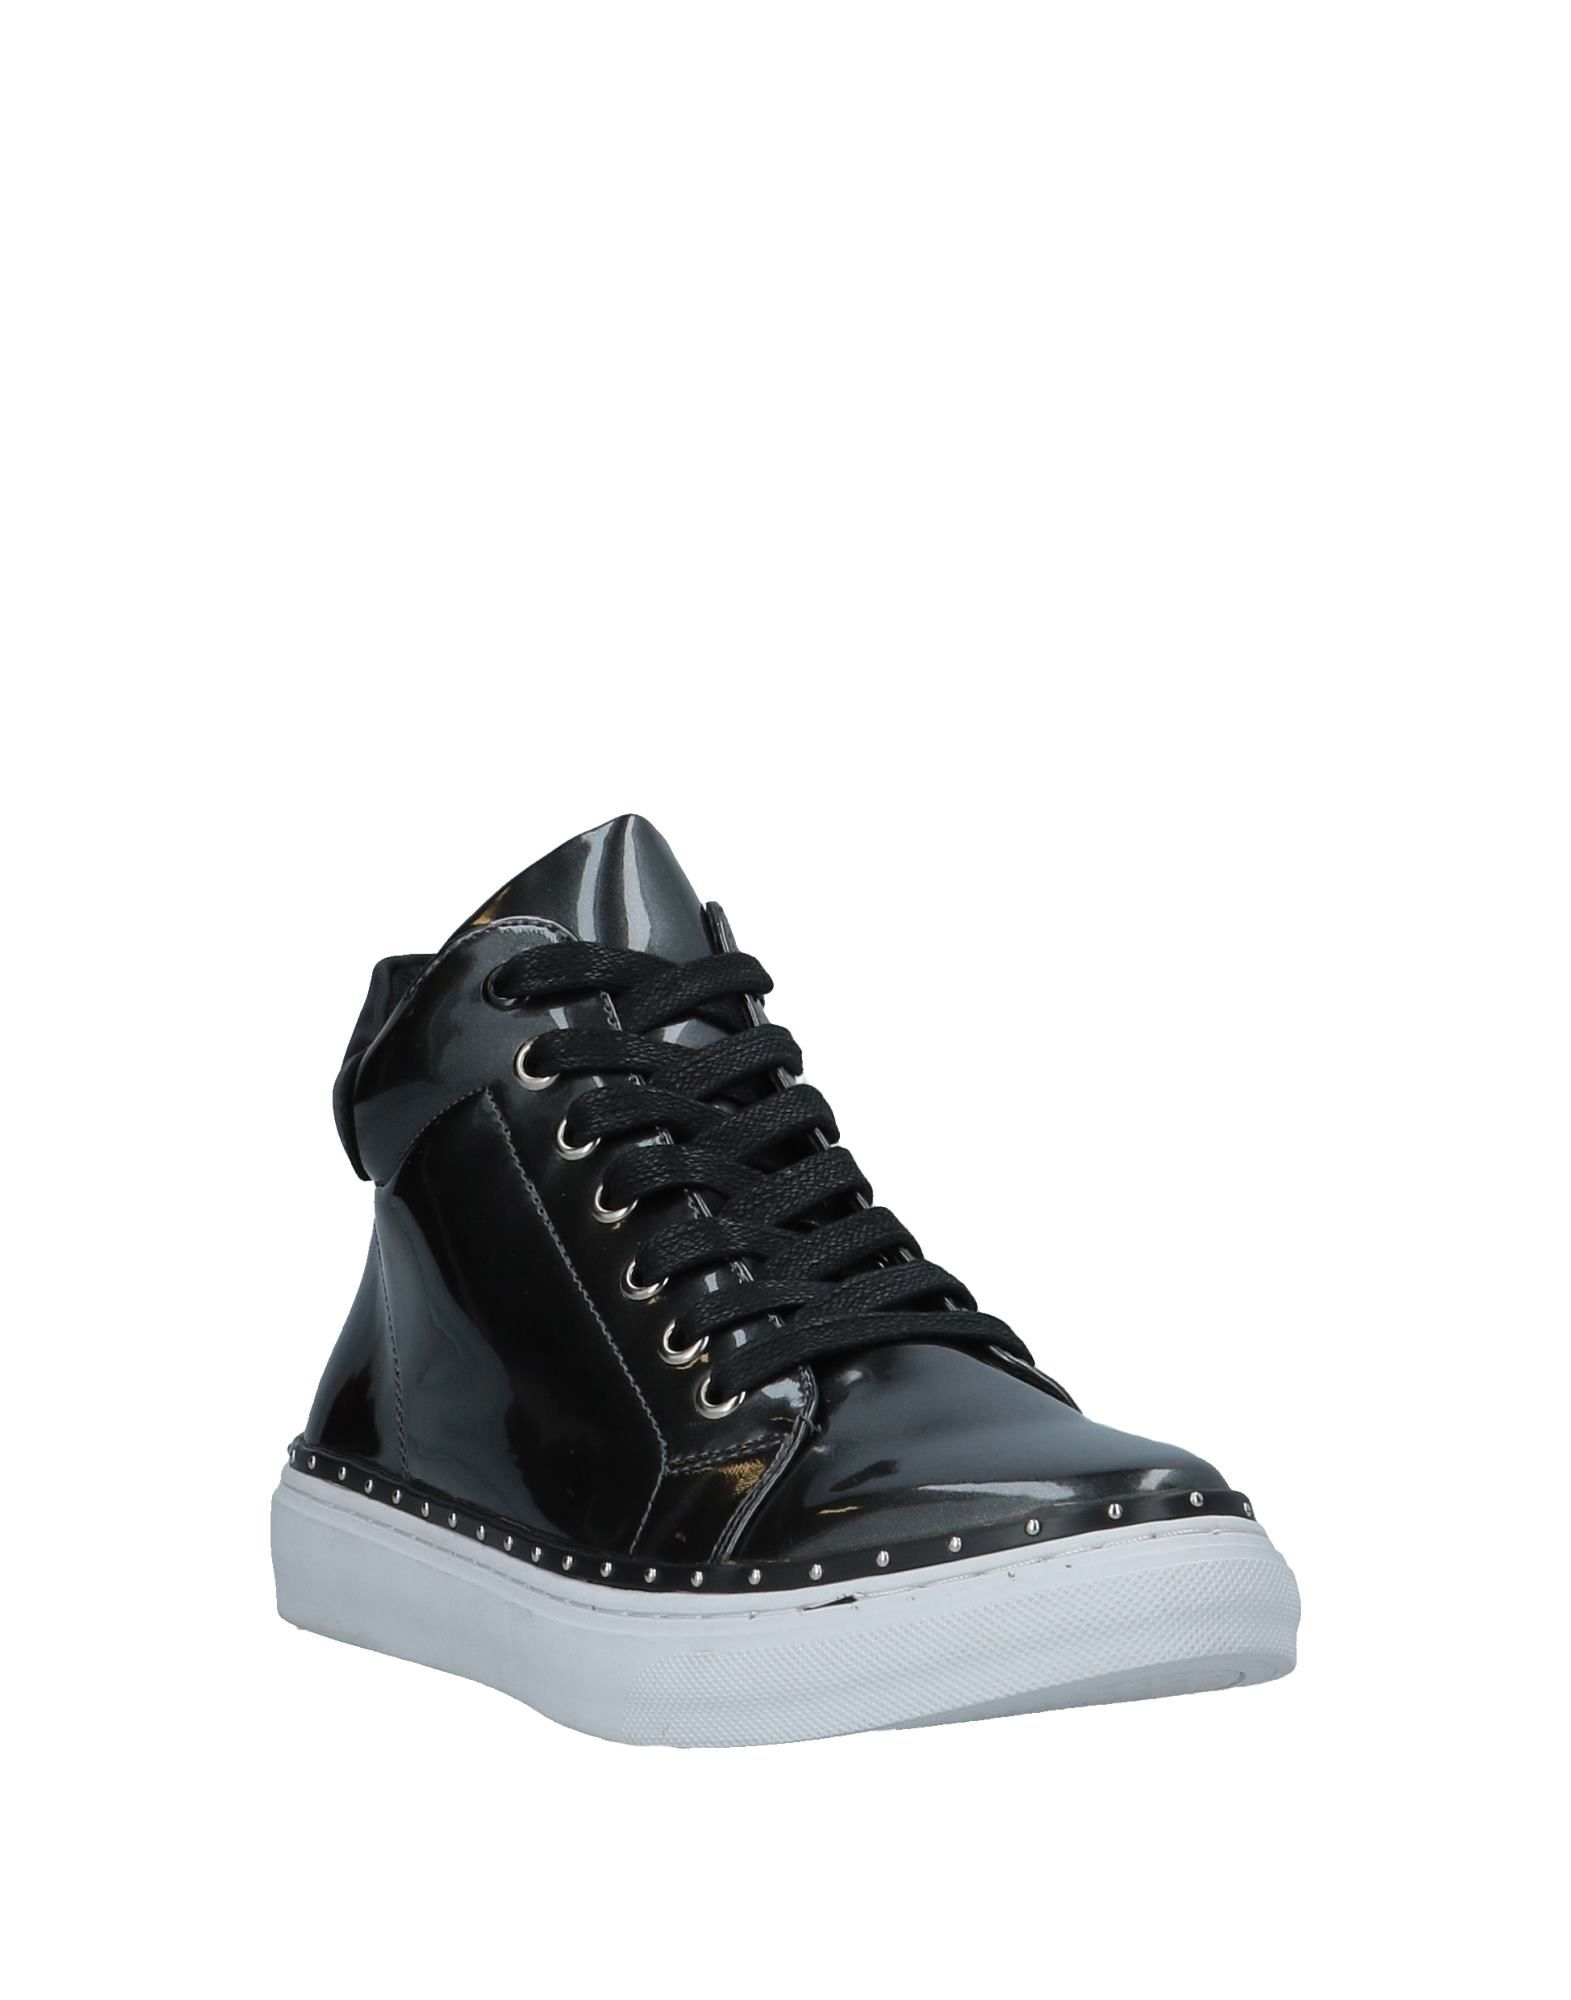 67 11544644OH Sixtyseven Sneakers Damen  11544644OH 67  e32229